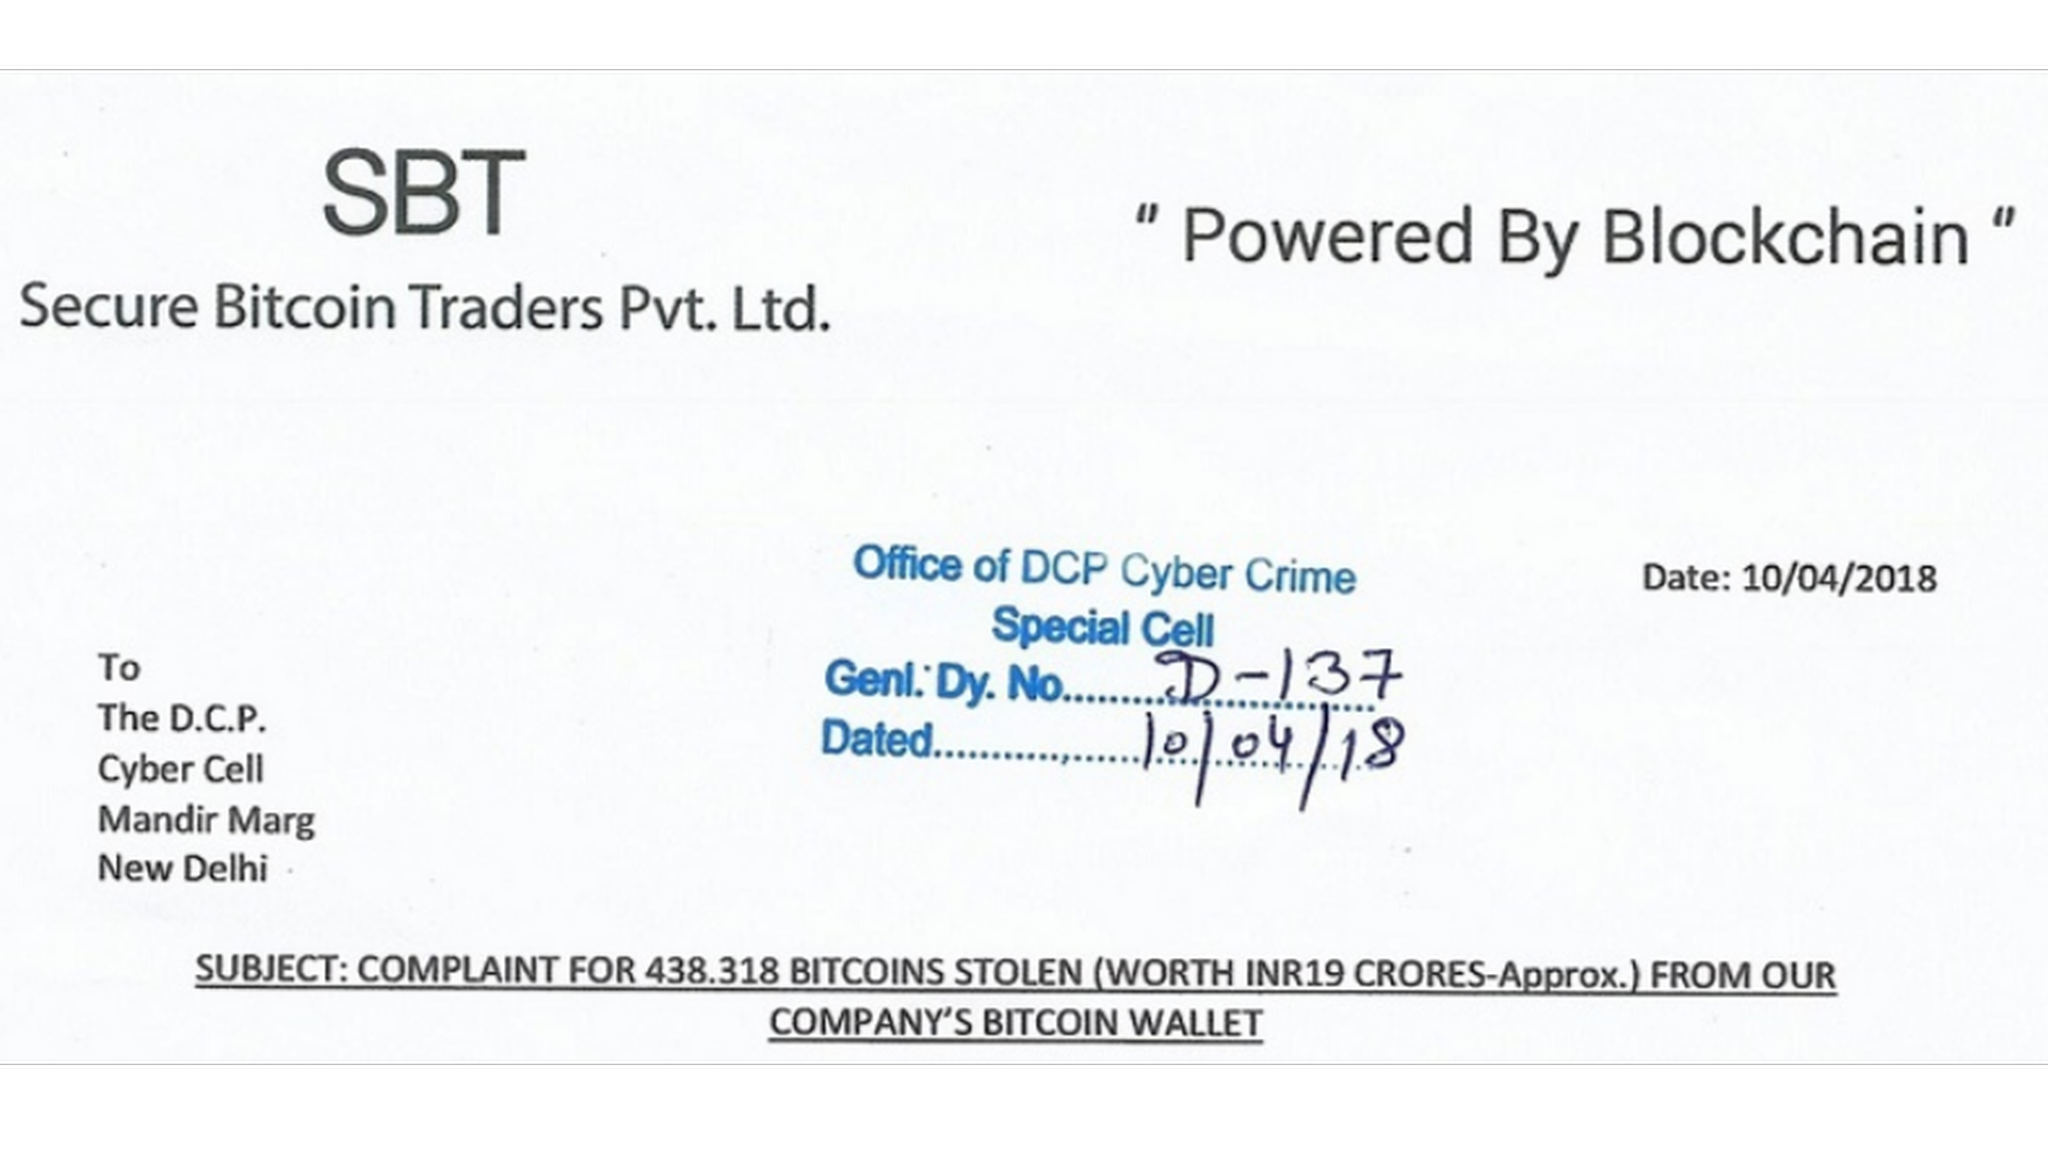 secure bitcoin traders pvt ltd